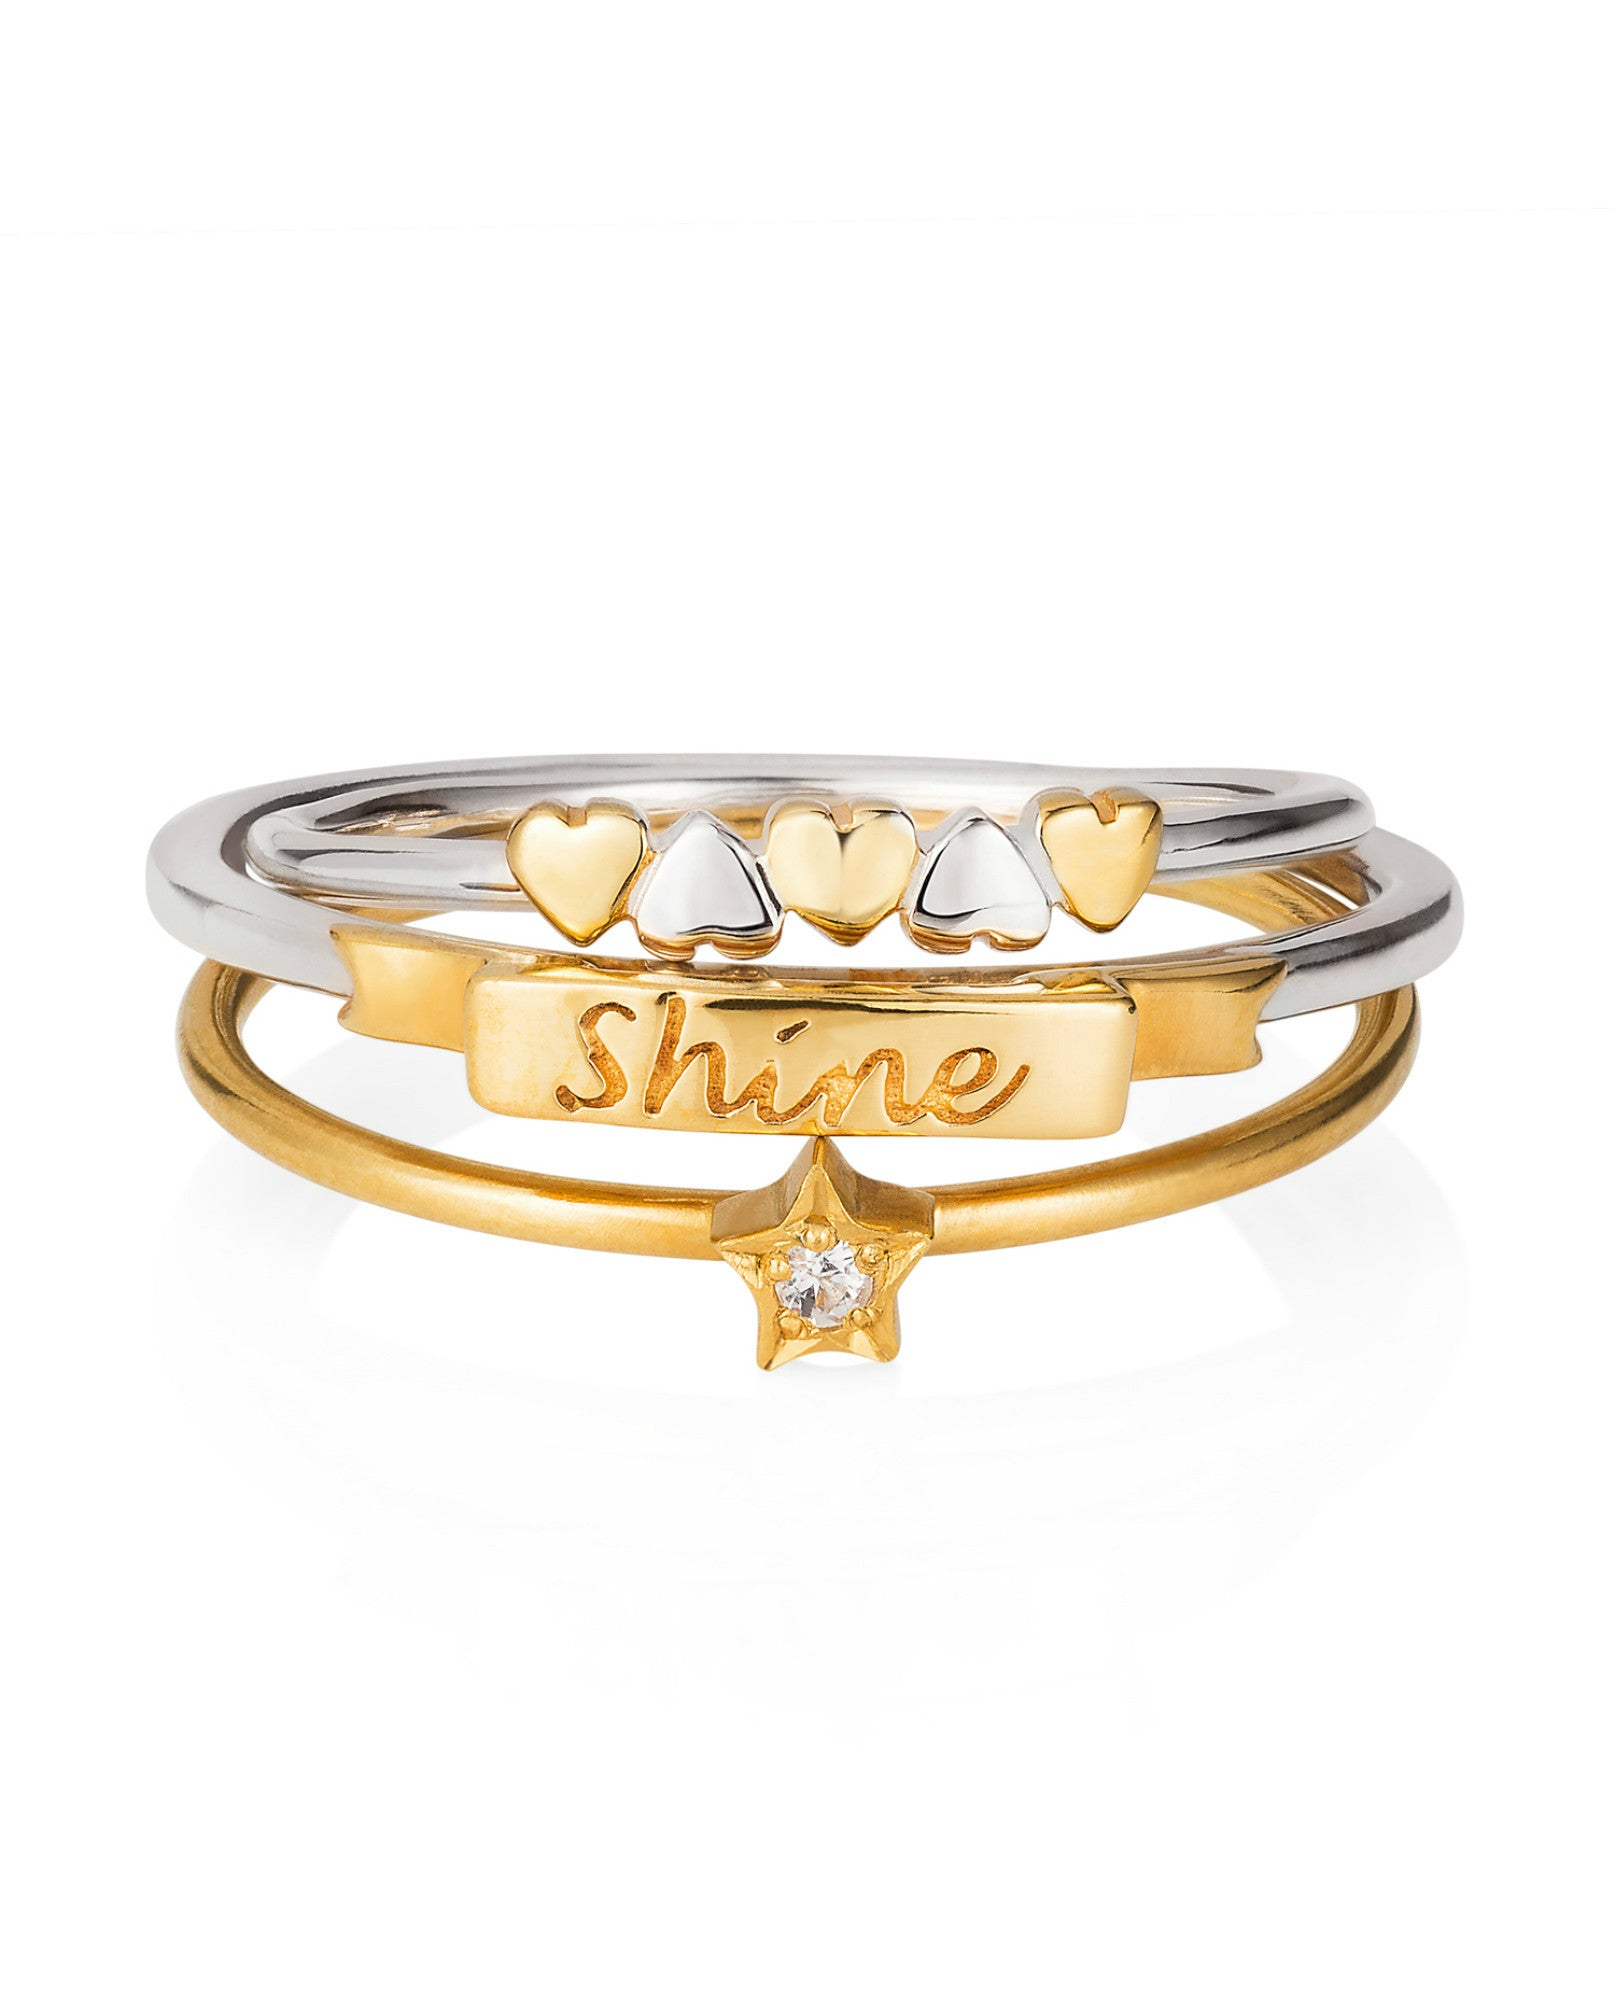 Lee Renée - 'Shine Like A Star' Hearts stack ring - The Velvet Closet - 1